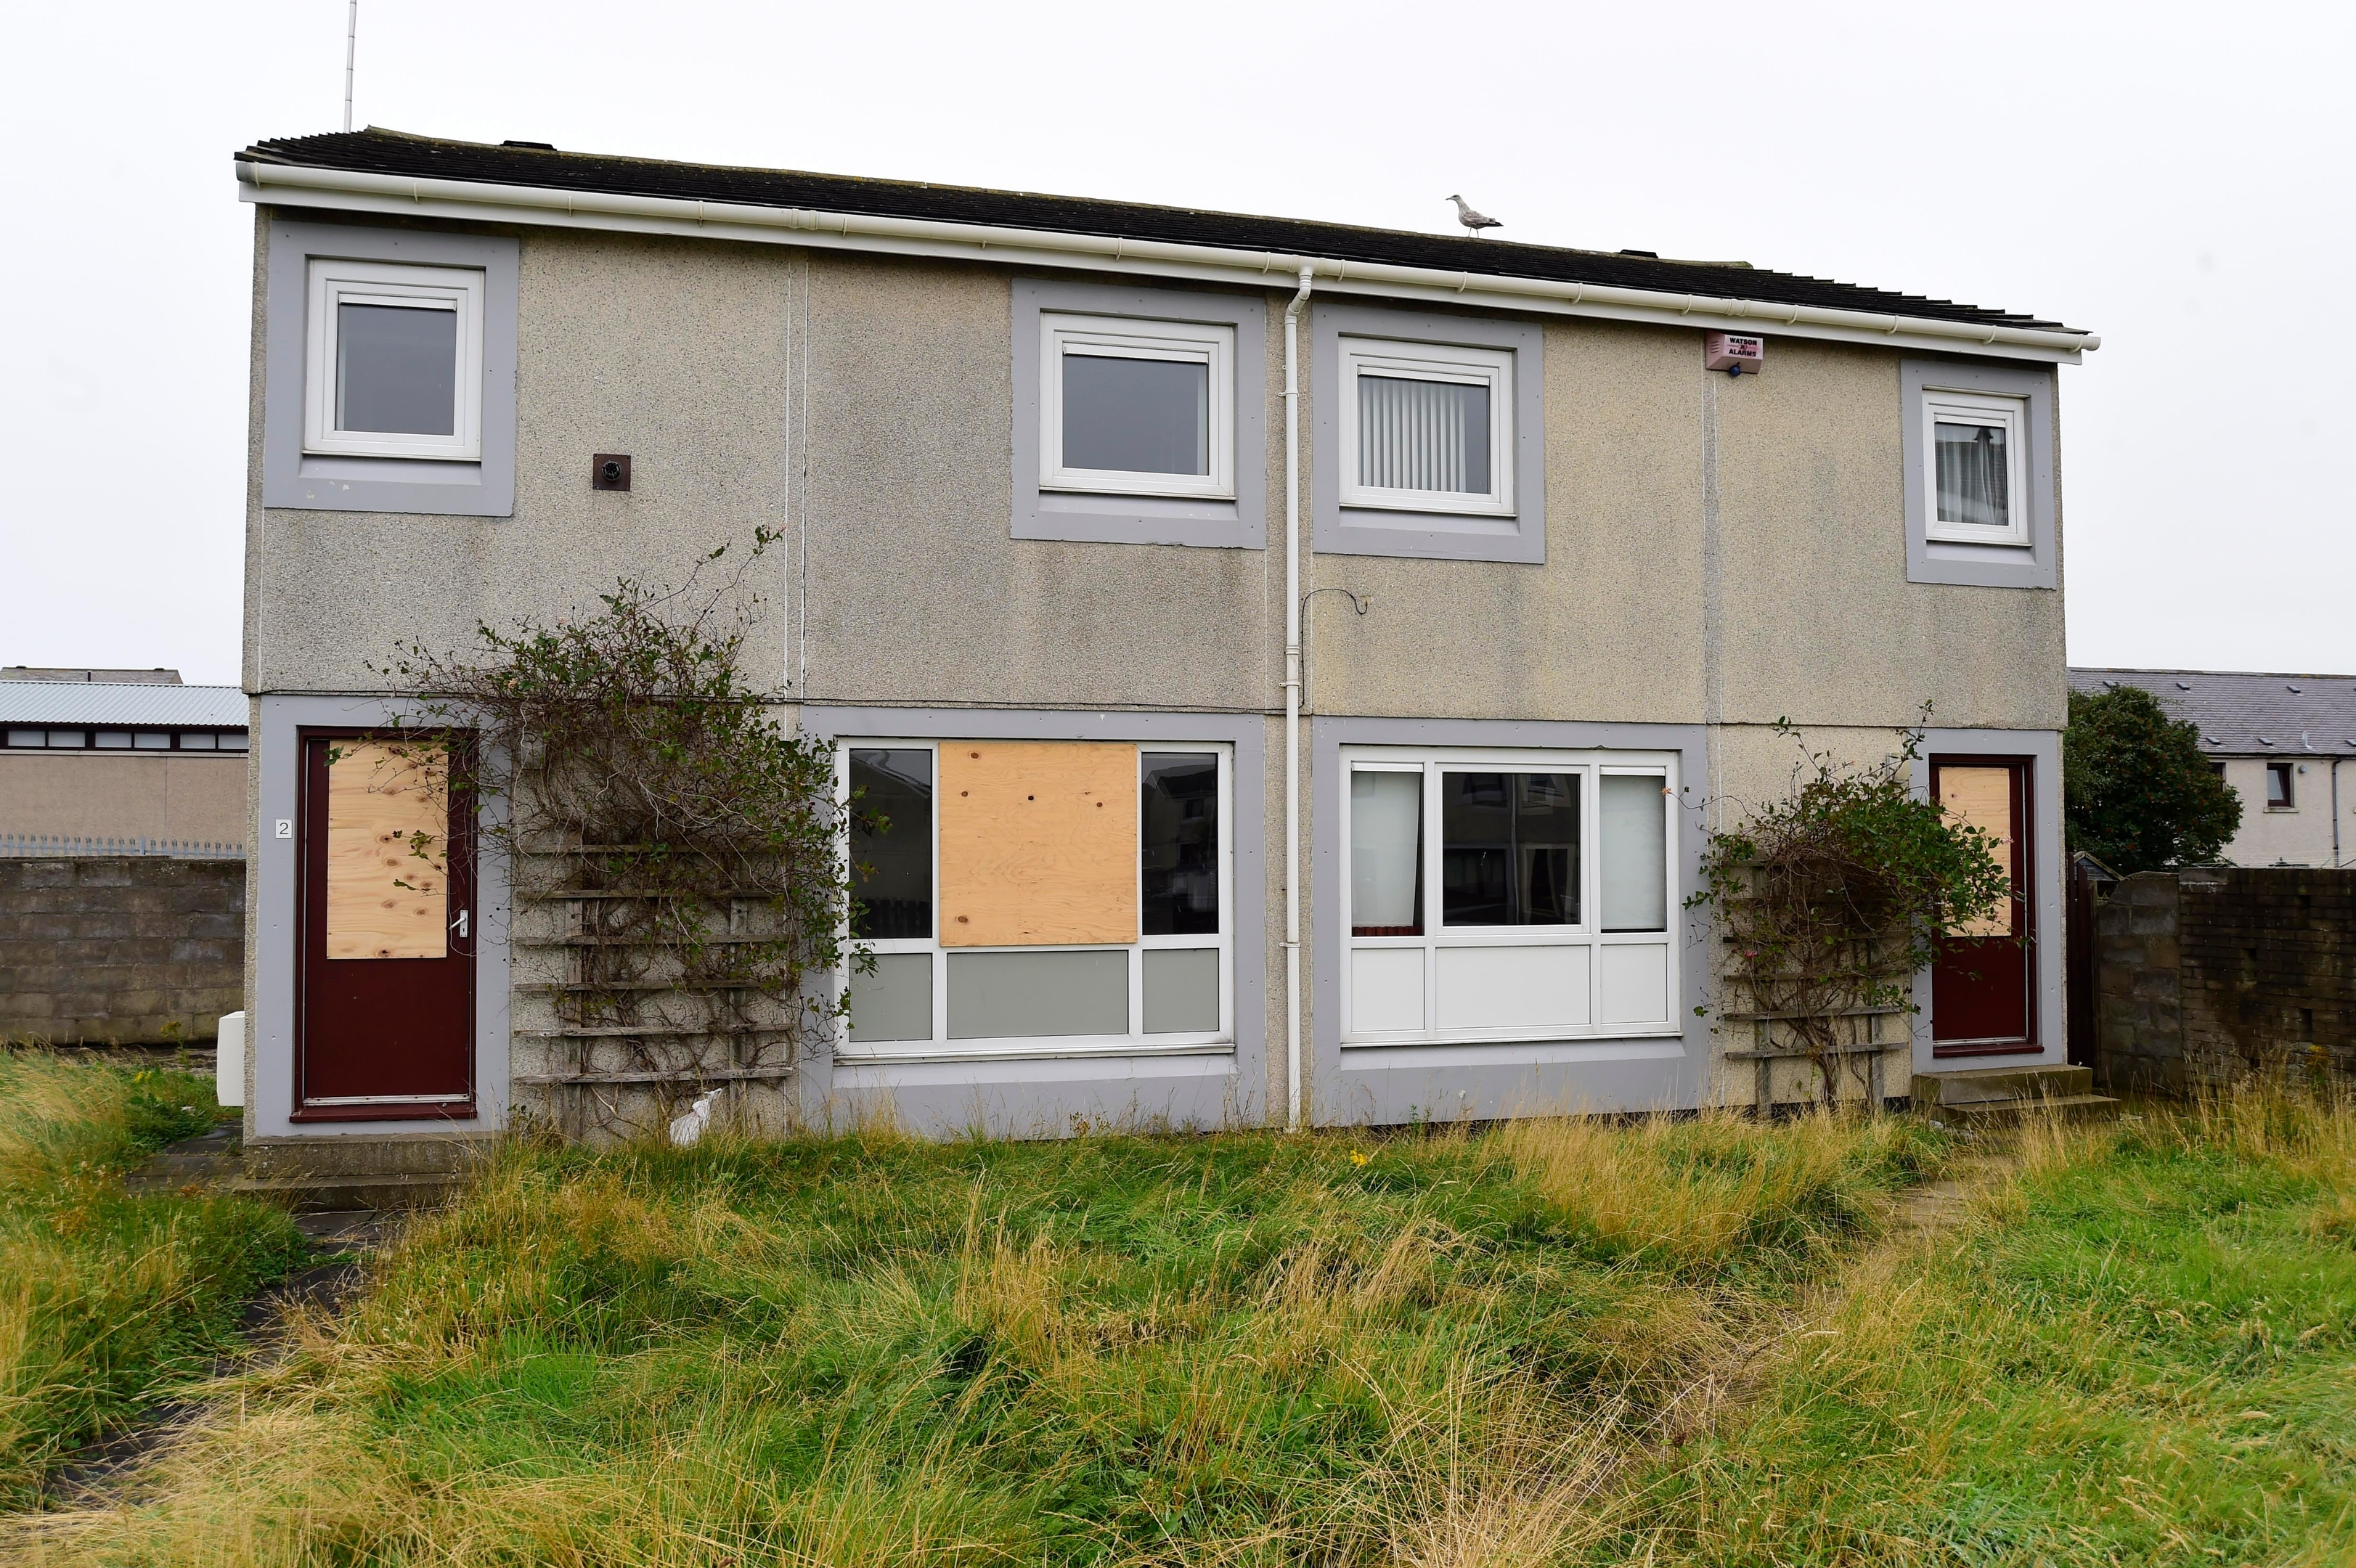 The former family home in Buchan Road, Fraserburgh